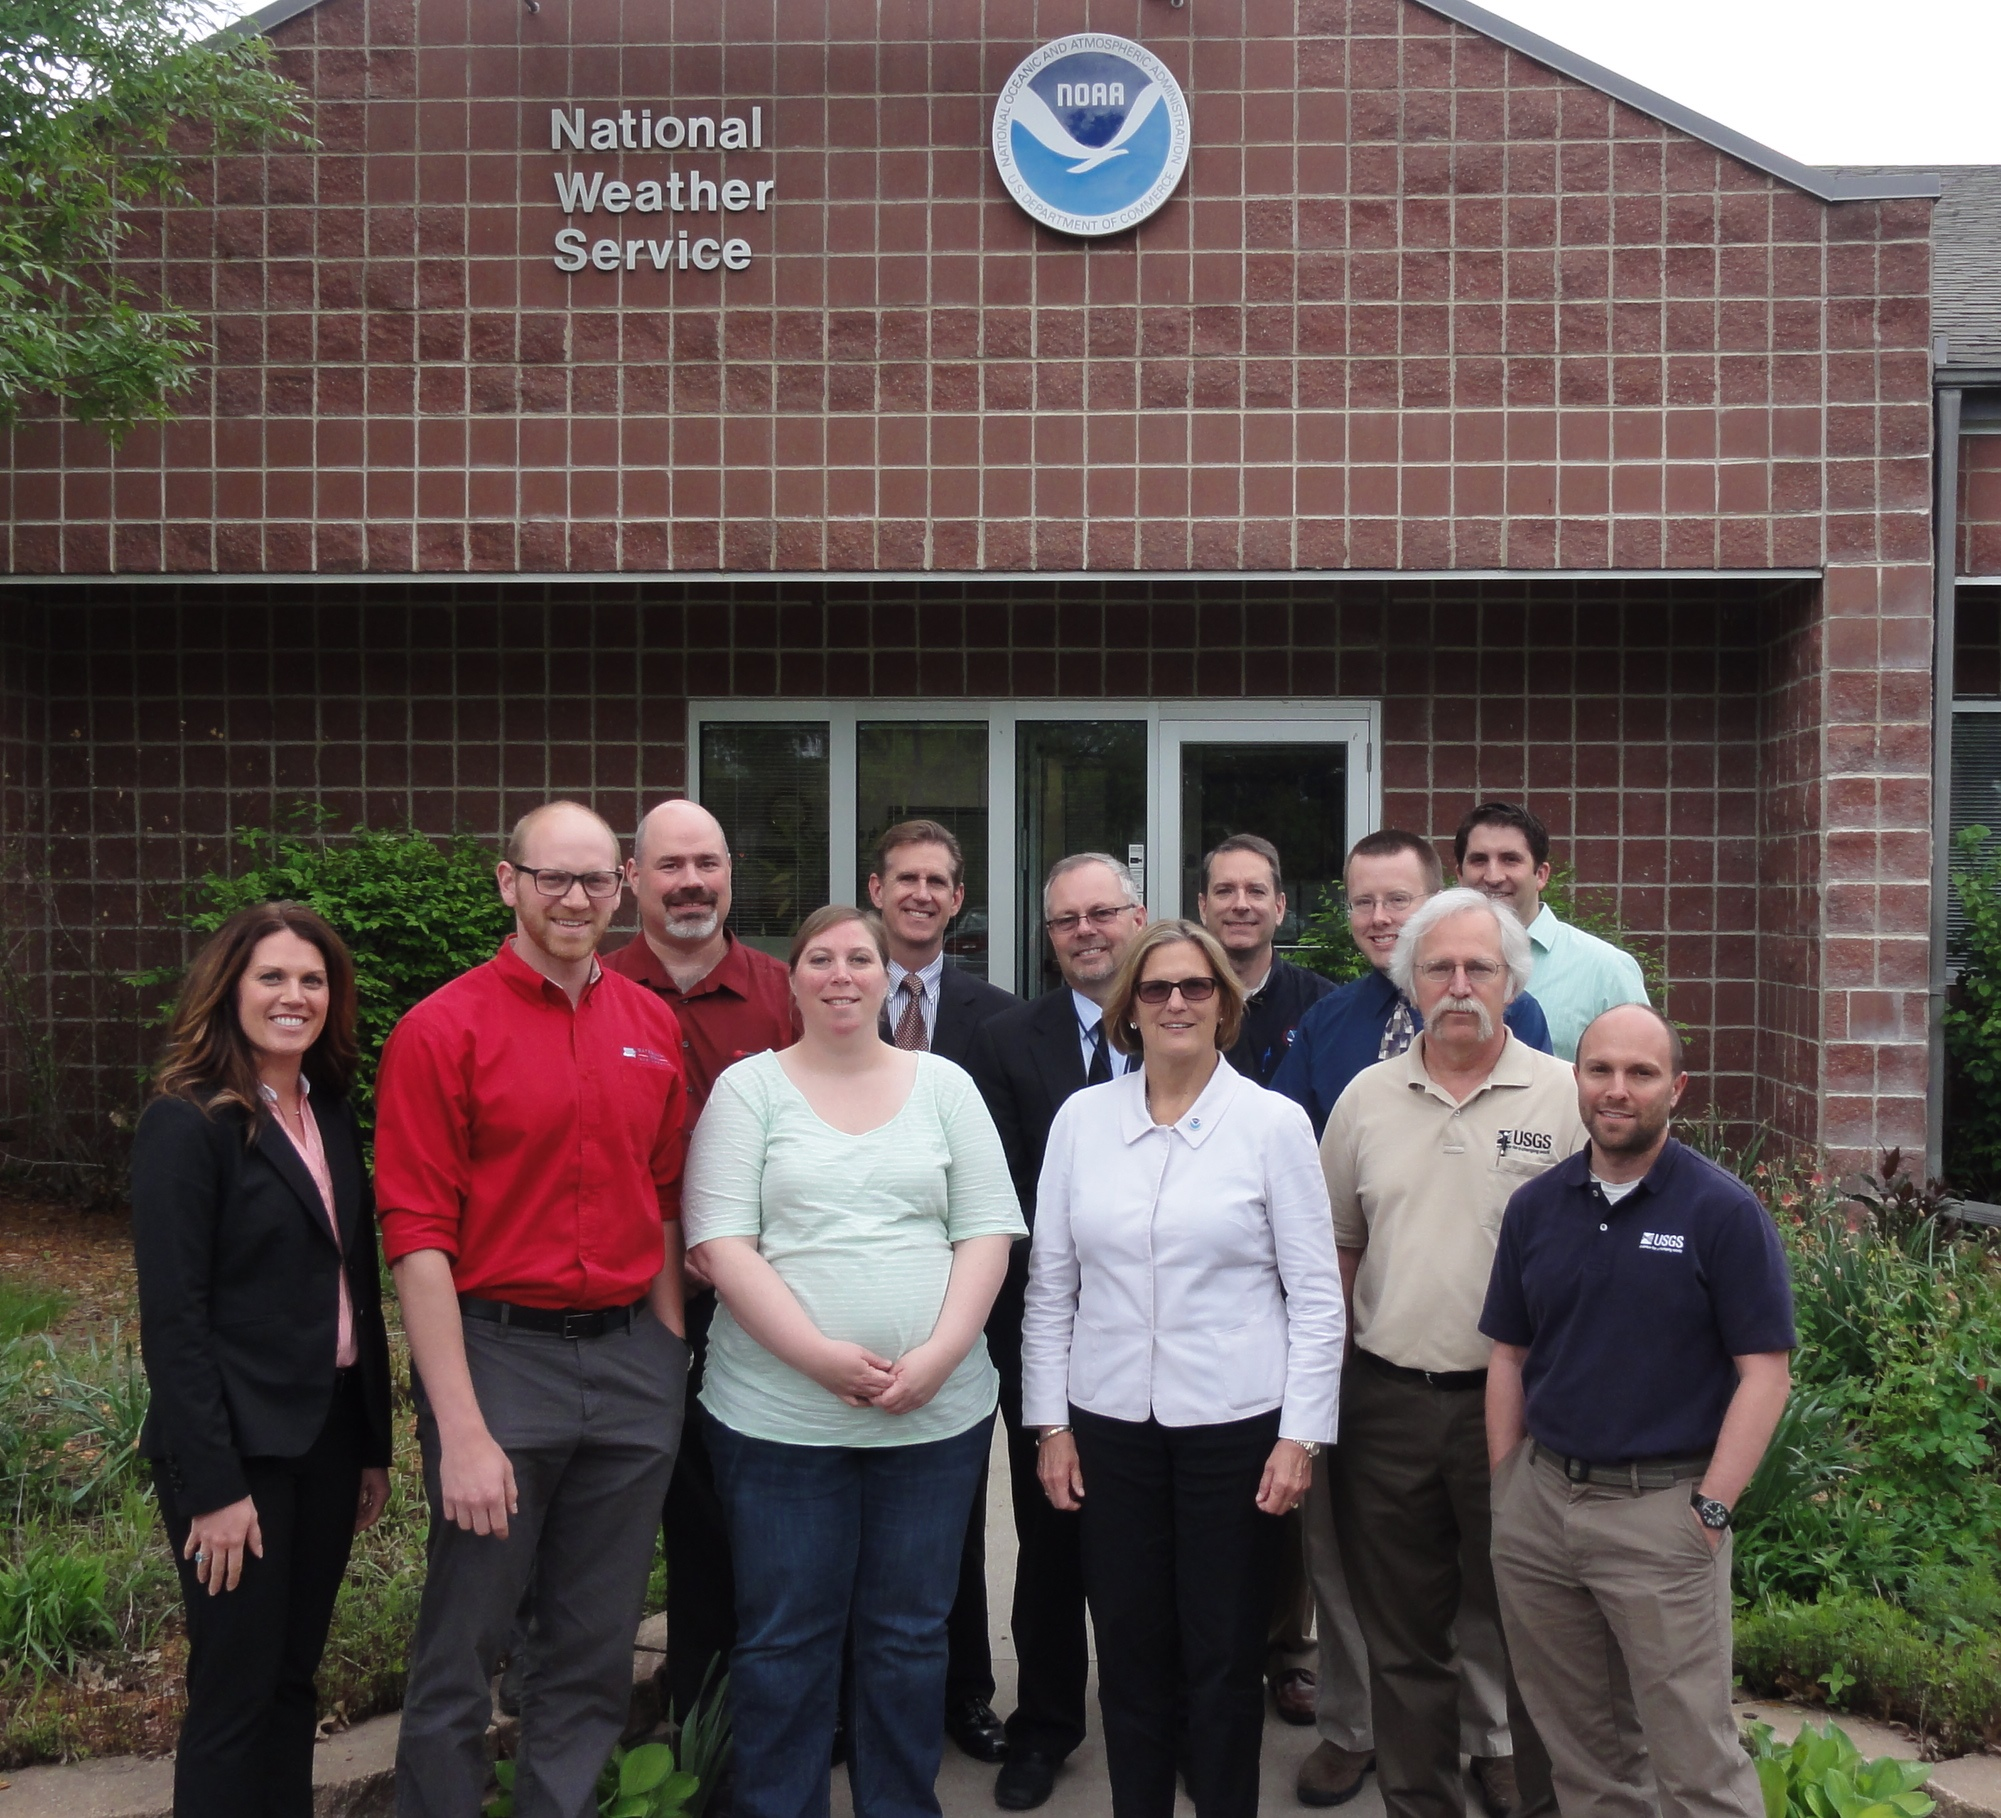 Back Row: Craig Cogil, NWS Des Moines Lead Forecaster; Jim Keeney, NWS Central Region Warning Coordination Meteorologist; Jeff Johnson, NWS Des Moines Acting Meteorologist in Charge; Brad Small, NWS Des Moines Lead Forecaster; Jeff Zogg, NWS Des Moines Senior Service Hydrologist; Kurt Kotenberg, NWS Des Moines Meteorologist Intern Front Row Left to Right: Jami Haberl, Safeguard Iowa Partnership Executive Director; Jesse Traux, Safeguard Iowa Partnership Program Manager; Mindy Beerends, NWS Des Moines General Forecaster; Dr. Kathryn Sullivan, NOAA Administrator and Under Secretary of Commerce for Oceans and Atmosphere; Greg Nalley, USGS Iowa Water Science Center Associate Director; Jon Nania, USGS Iowa Water Science Center Acting Director